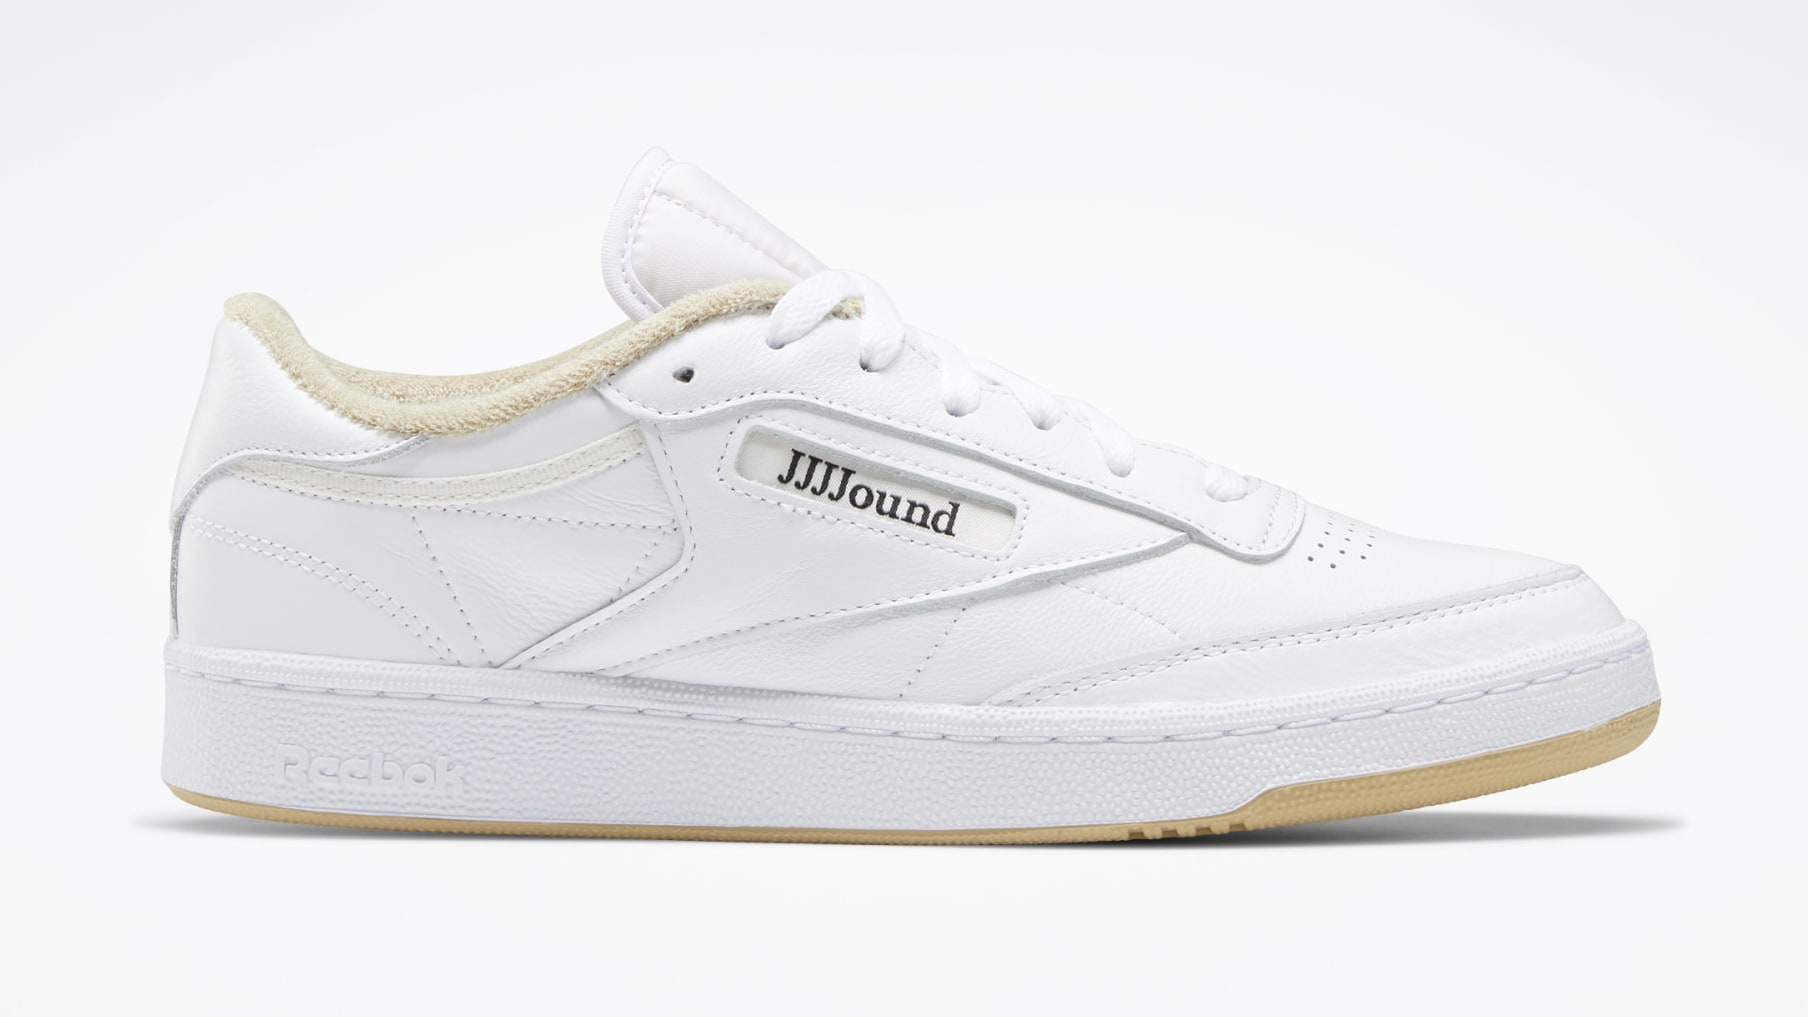 JJJJound x Reebok Club C 'Beige' FY6066 Lateral